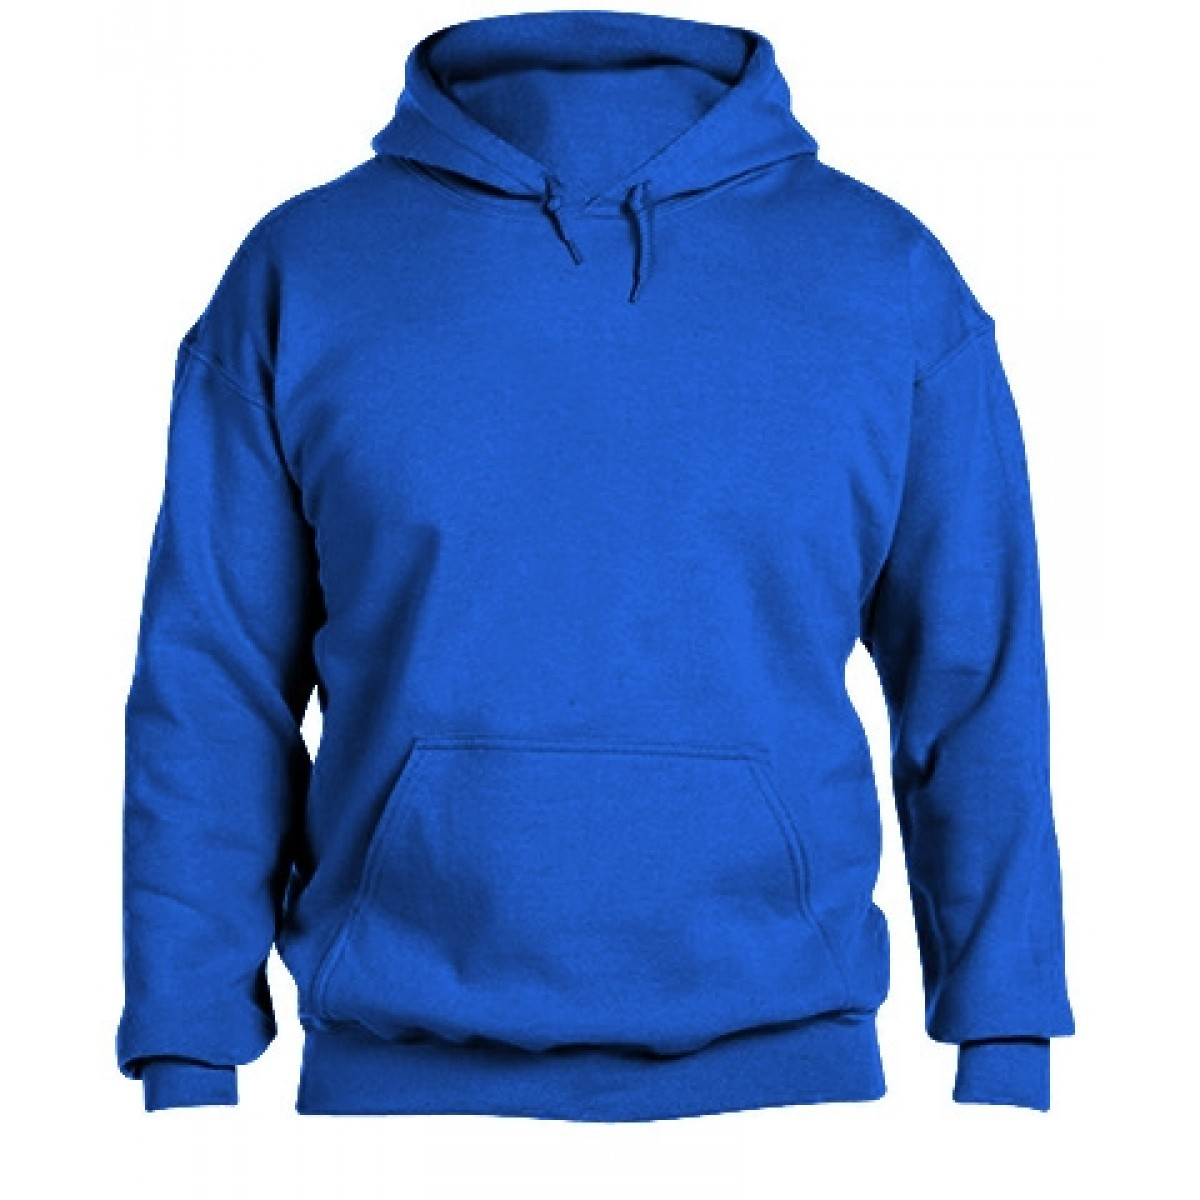 Solid Hooded Sweatshirt  50/50 Heavy Blend-Royal Blue-S